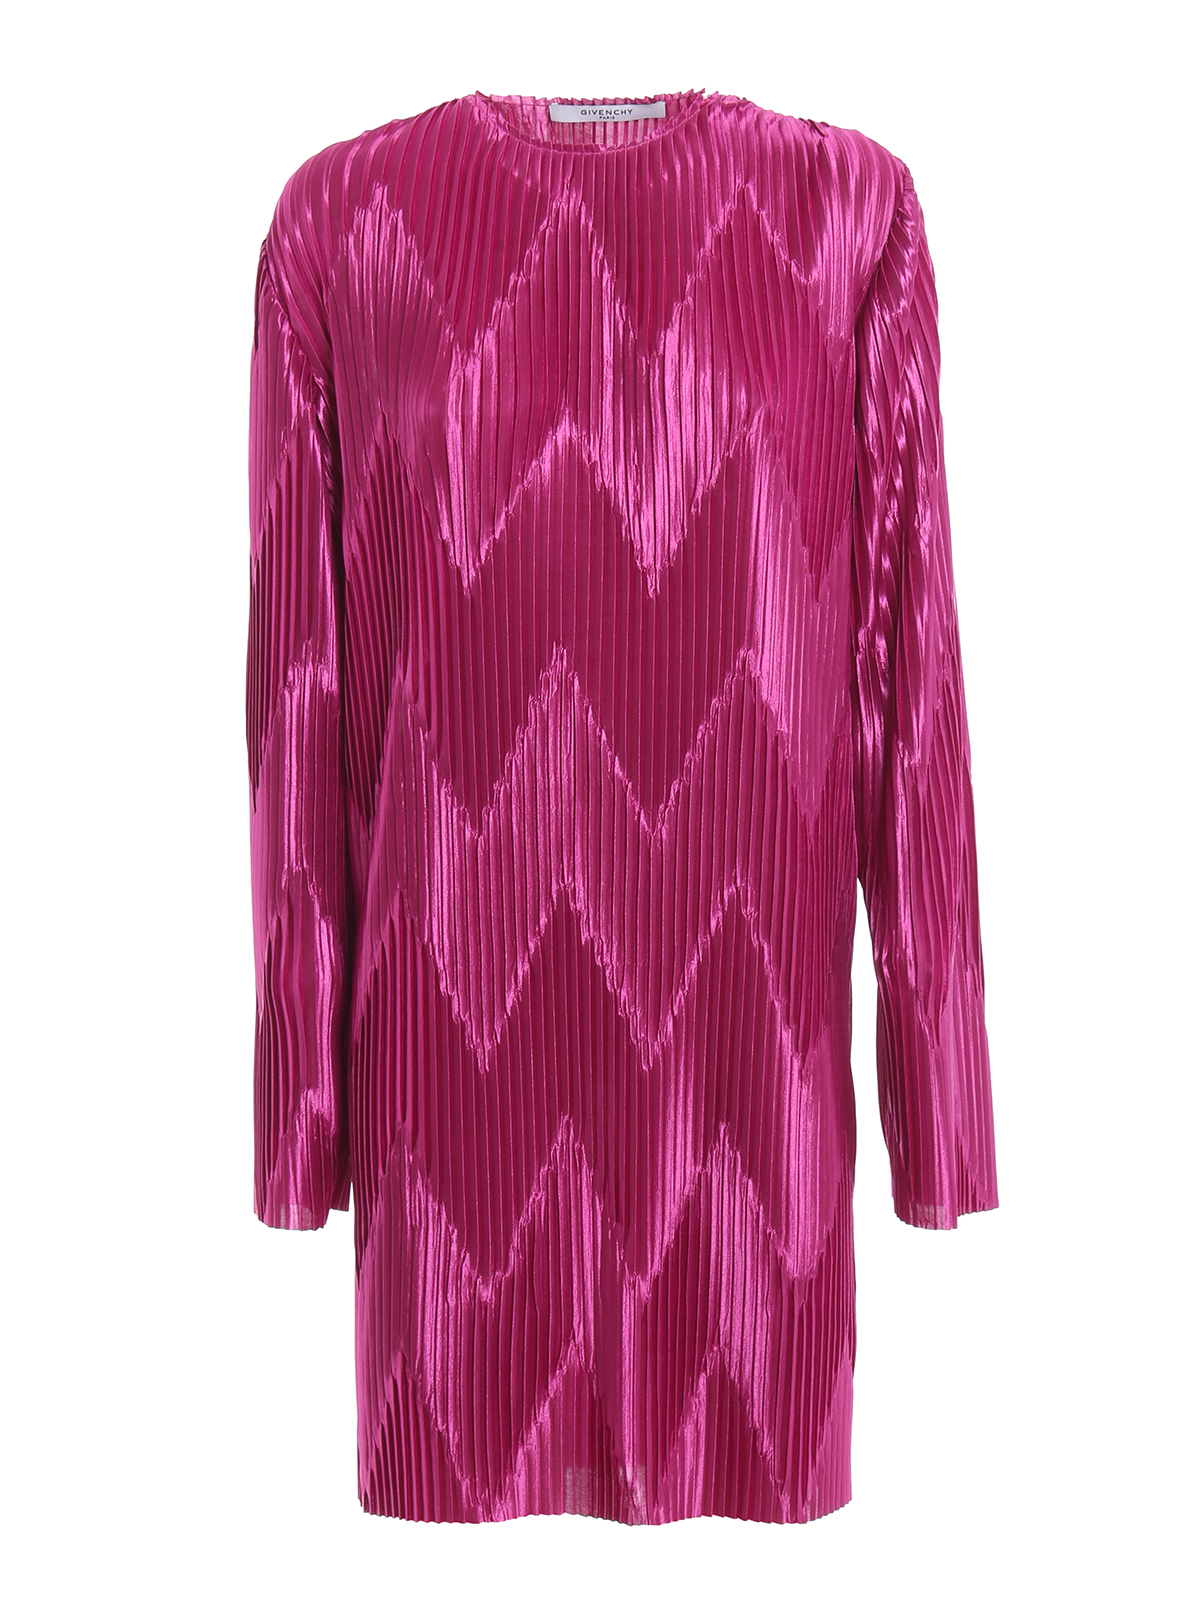 GIVENCHY  cocktail dresses - Orchid purple chevron pleated jersey dress 54e1a59233a61